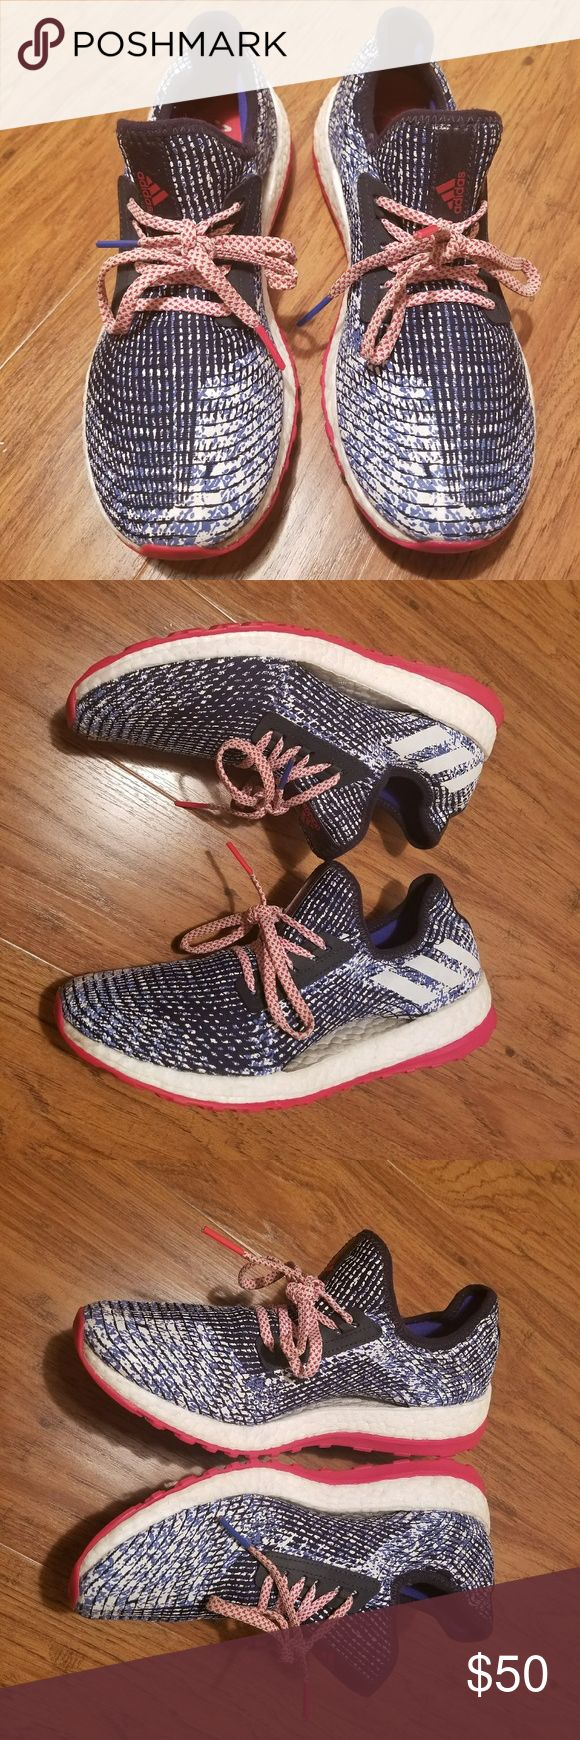 Adidas Pure Boost X Size: Womens 9 Color: Red/White/Blue Price: $49.99 adidas Shoes